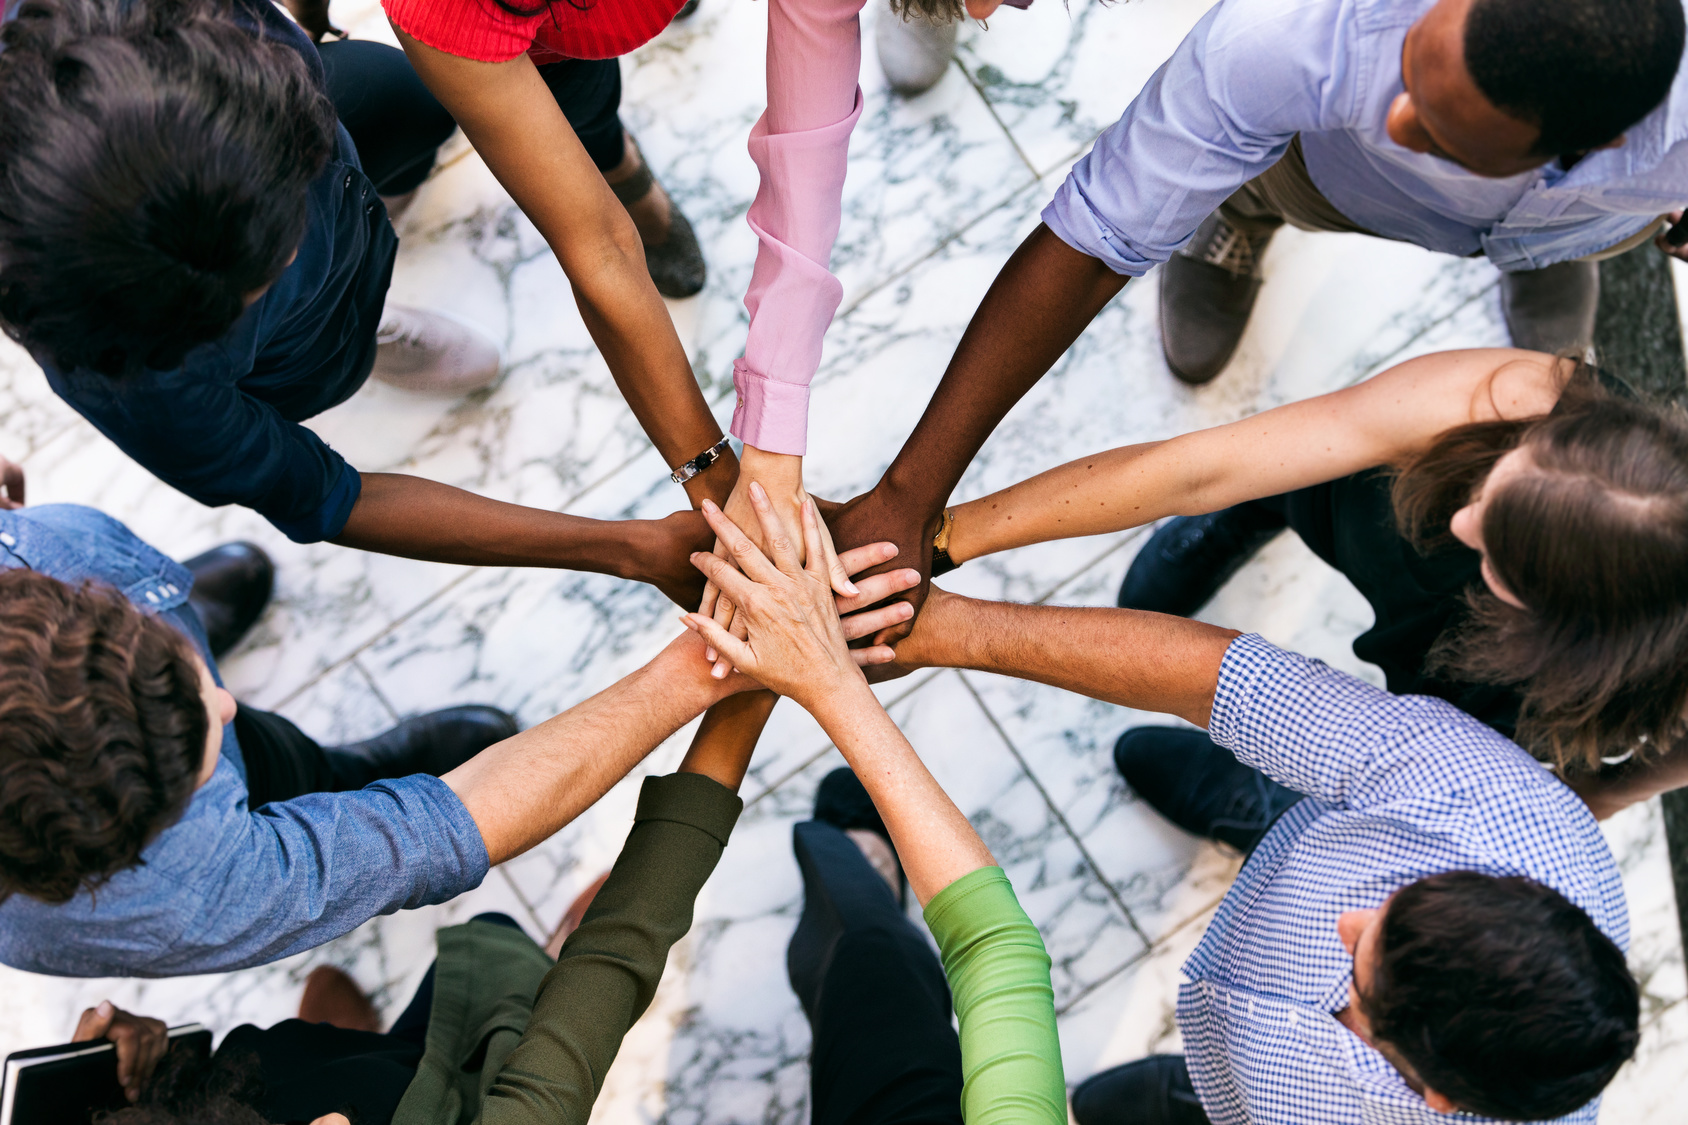 Workspace: Team Of Diverse Workers Put Hands Together